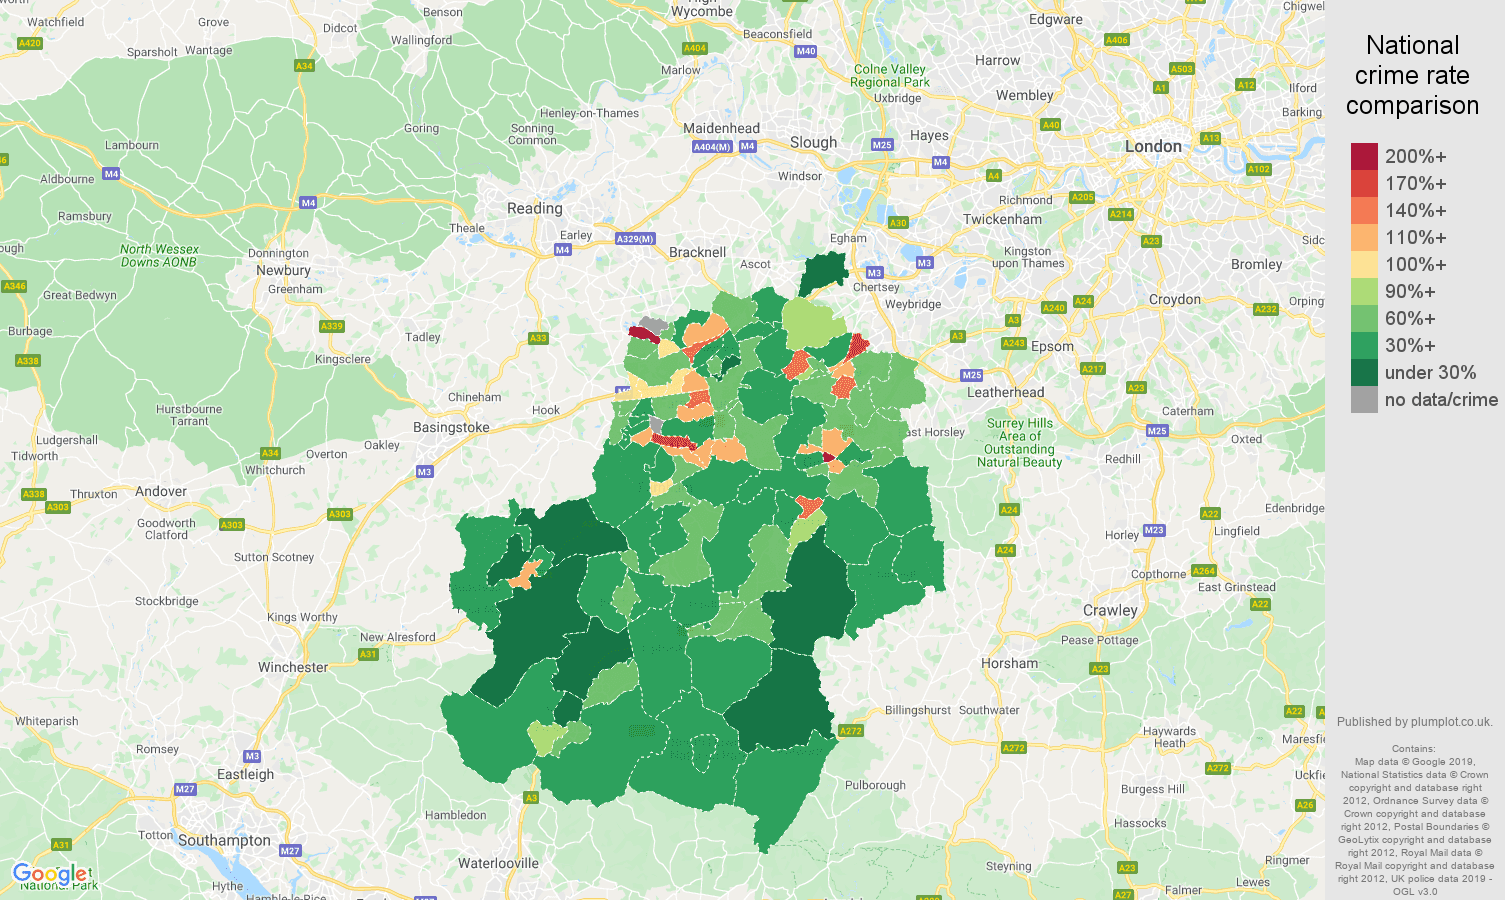 Guildford public order crime rate comparison map